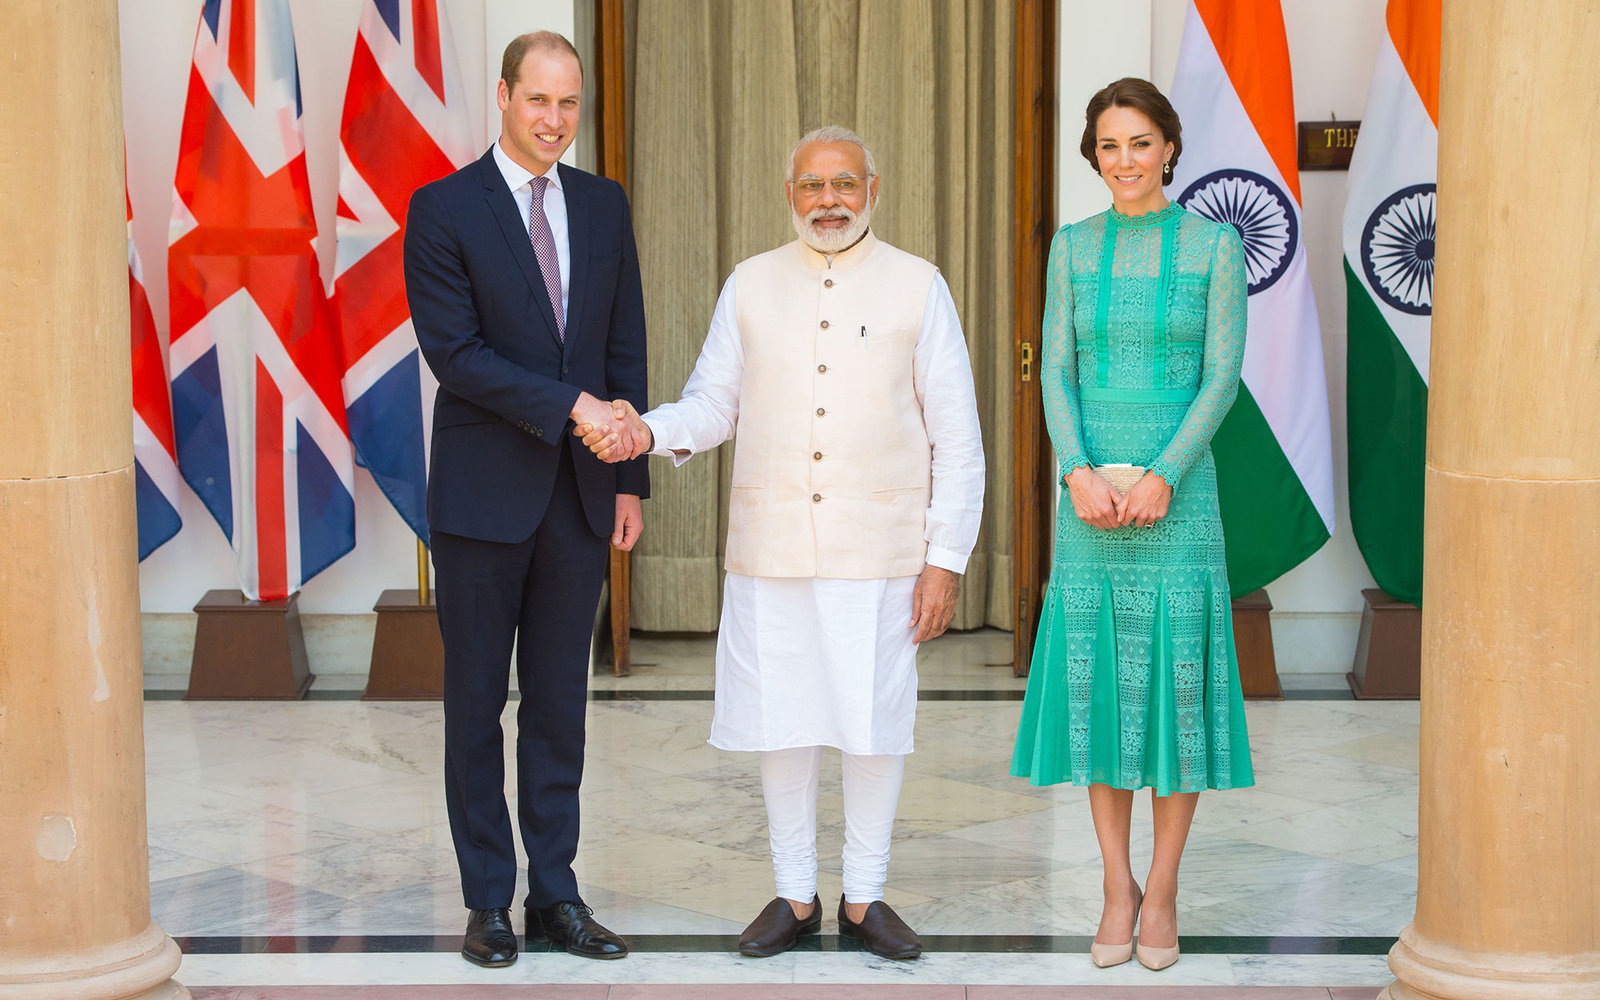 NEW DELHI, INDIA - APRIL 12:  Catherine, Duchess of Cambridge and Prince William, Duke of Cambridge meet Prime Minister of India Narenda Modi in New Delhi's Hyderabad House on April 12, 2016 in New Dehli, India. The Duke and Duchess of Cambridge are on a